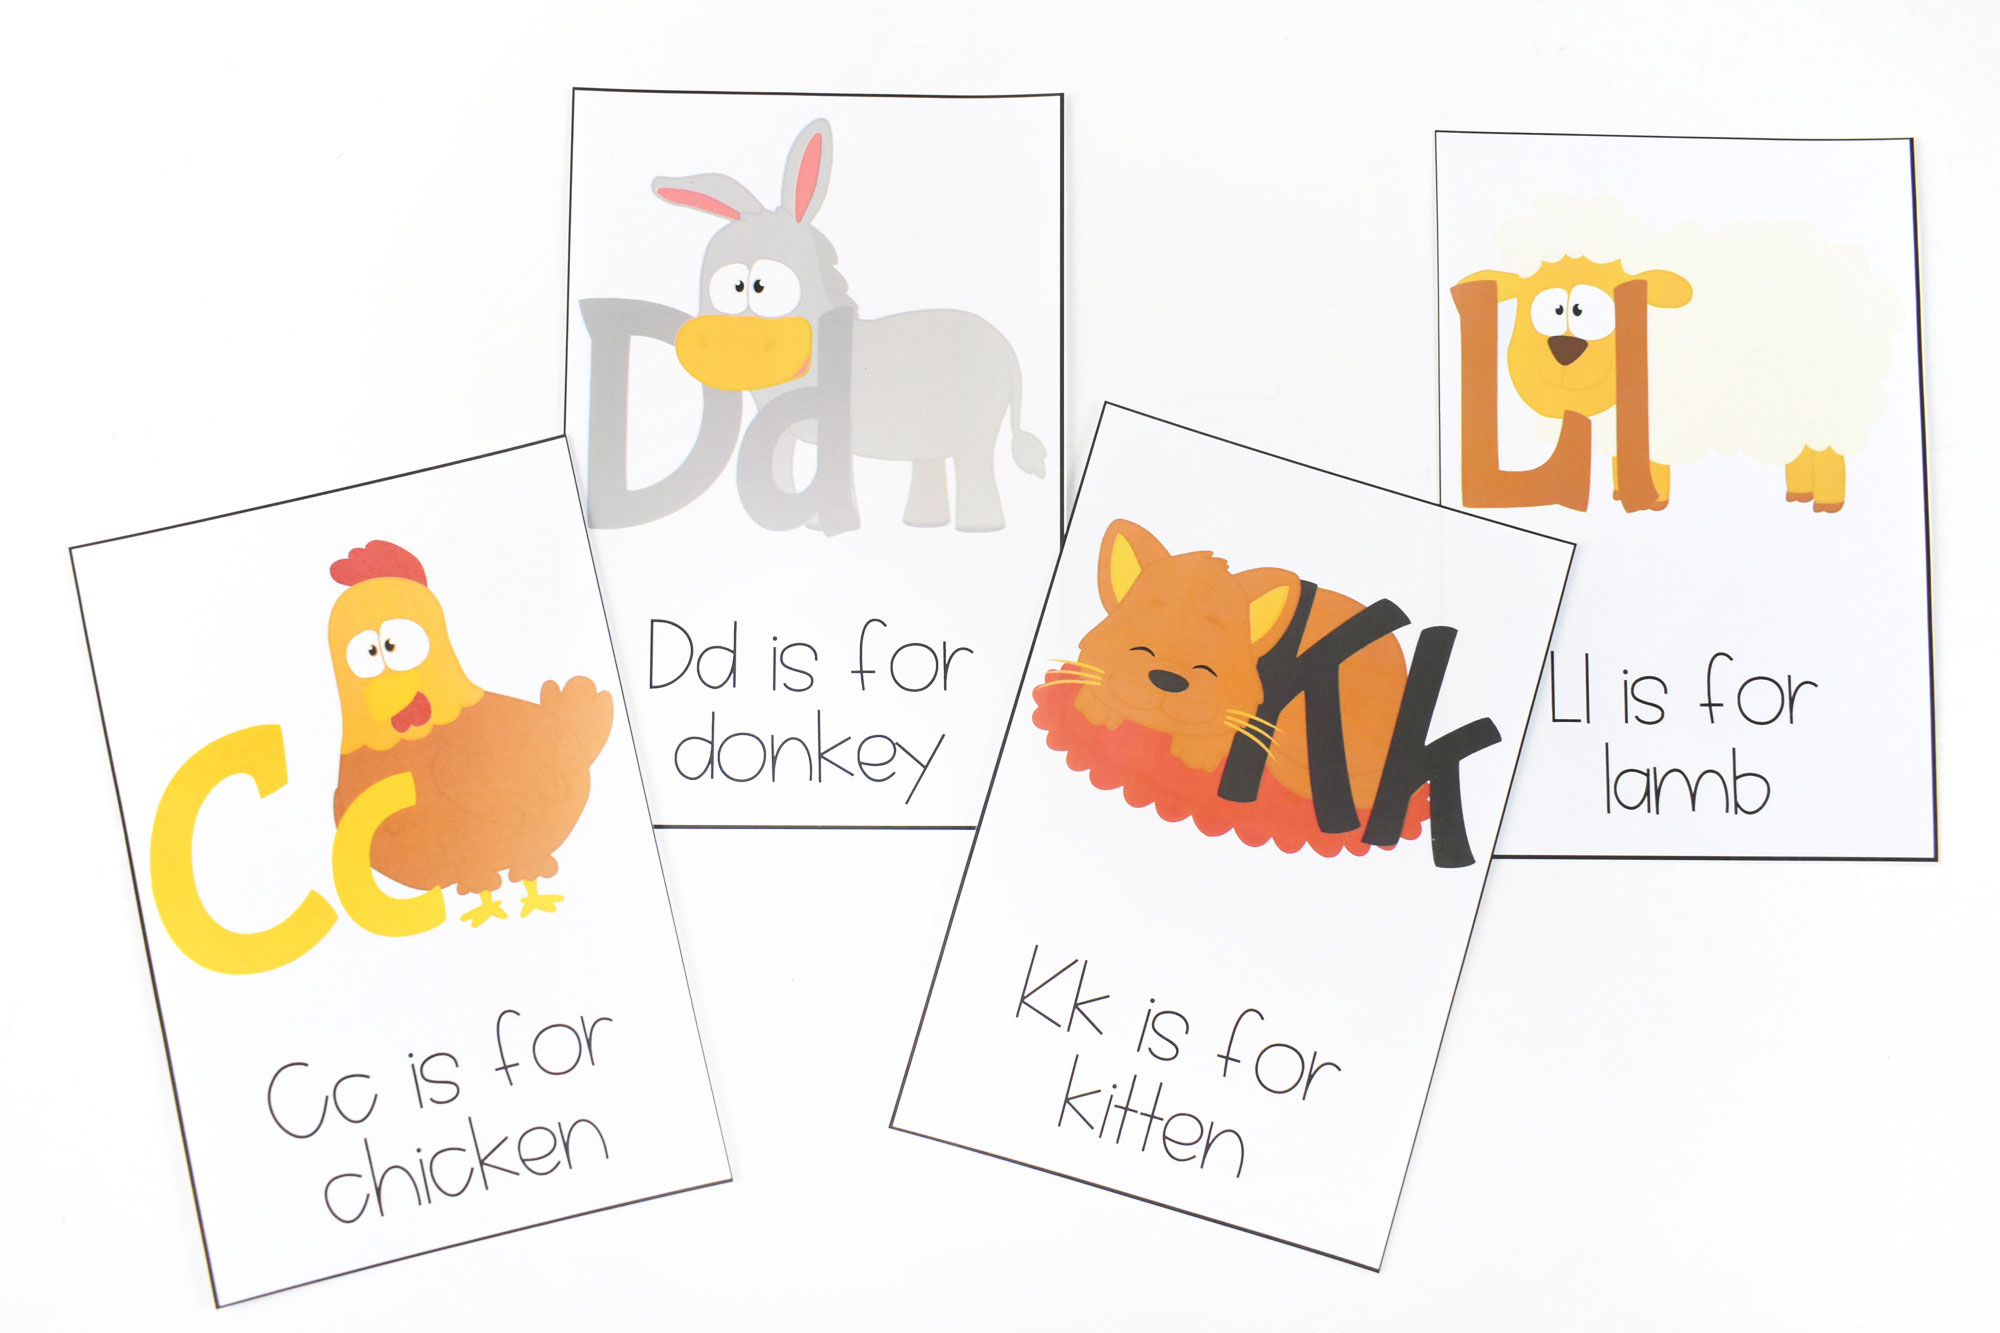 Farm Themed ABC printable flashcards | HolidayPrintables.net #farms #abcprintables #printablesforkids #educationprintables #homeschoolprintables #preschoolprintables #weloveprintables #holidayprintables